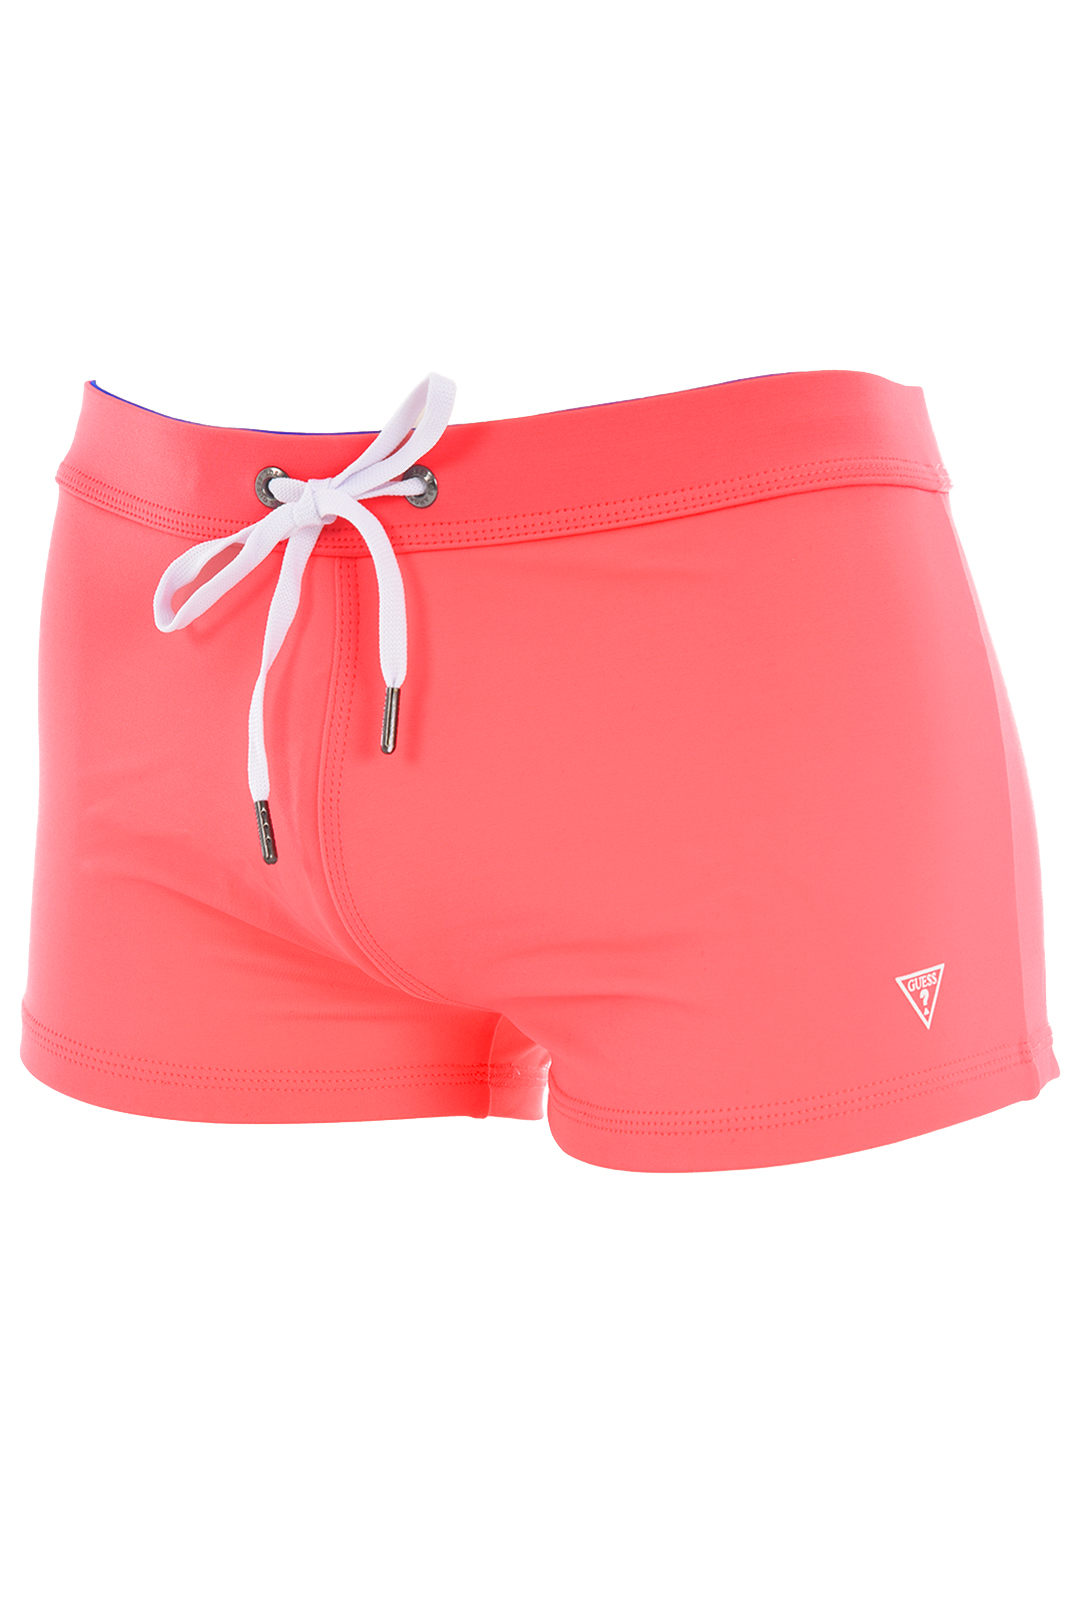 Shorts de bain  Guess jeans F82S02 LY006 TOPK TORCH PINK